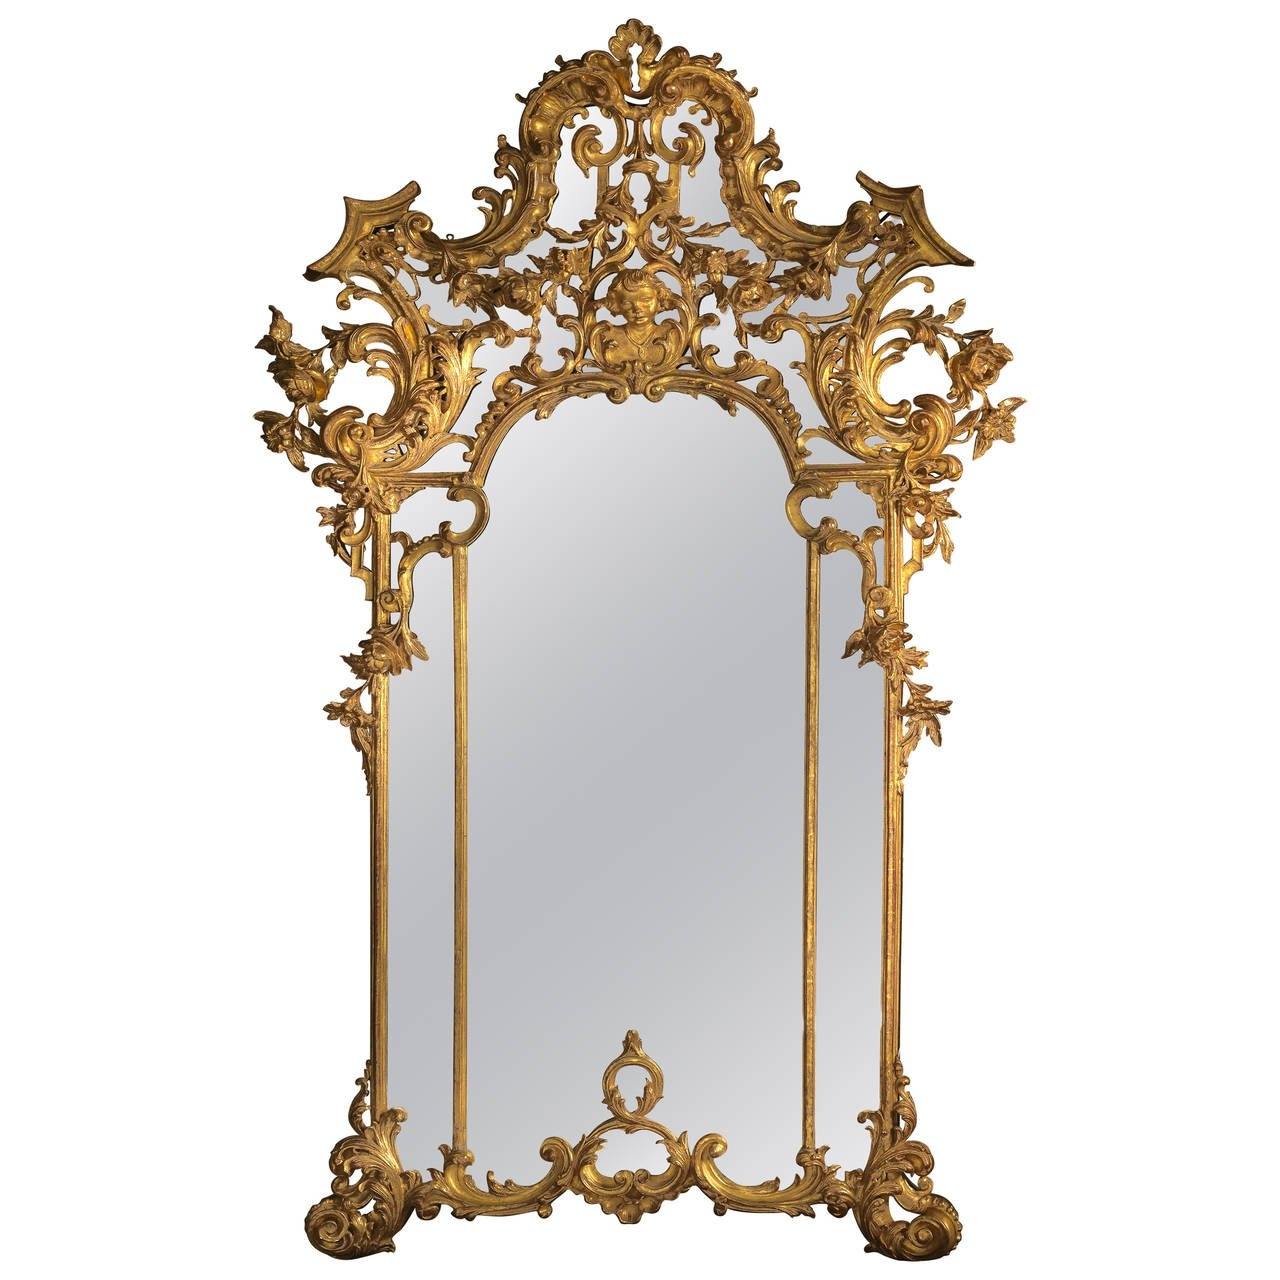 Rococo Style Giltwood Mirror For Sale At 1stdibs Regarding Rococo Style Mirrors (Image 13 of 15)